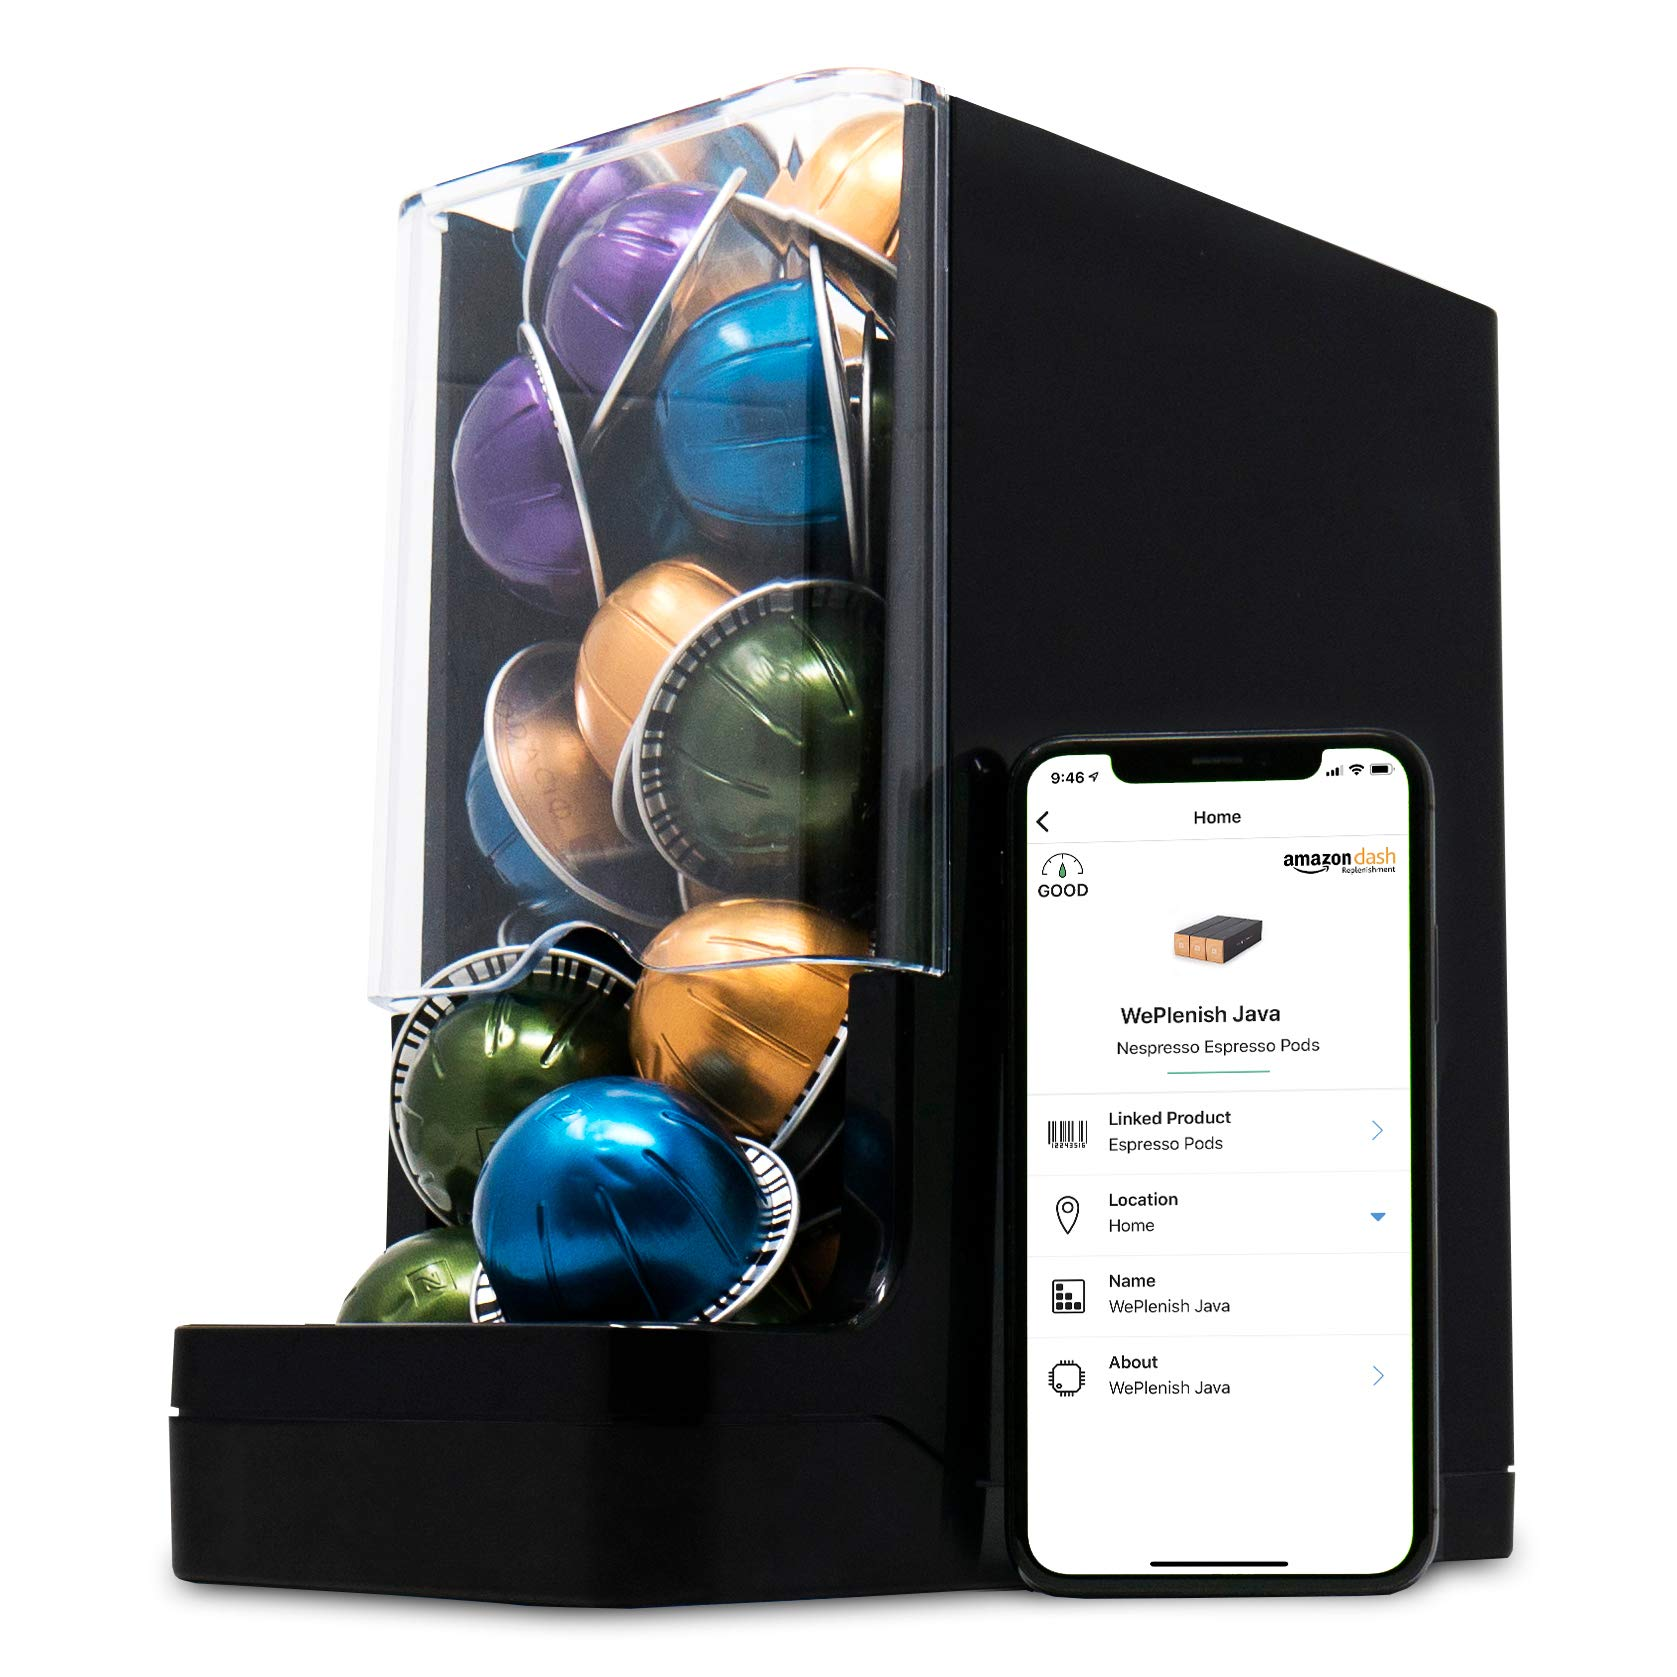 Never Run Out of Coffee - WePlenish Java - Smart Coffee Pod Holder with Amazon Dash Replenishment Built In | Nespresso Capsule and Keurig K-Cup Holder Black by WePlenish (Image #1)